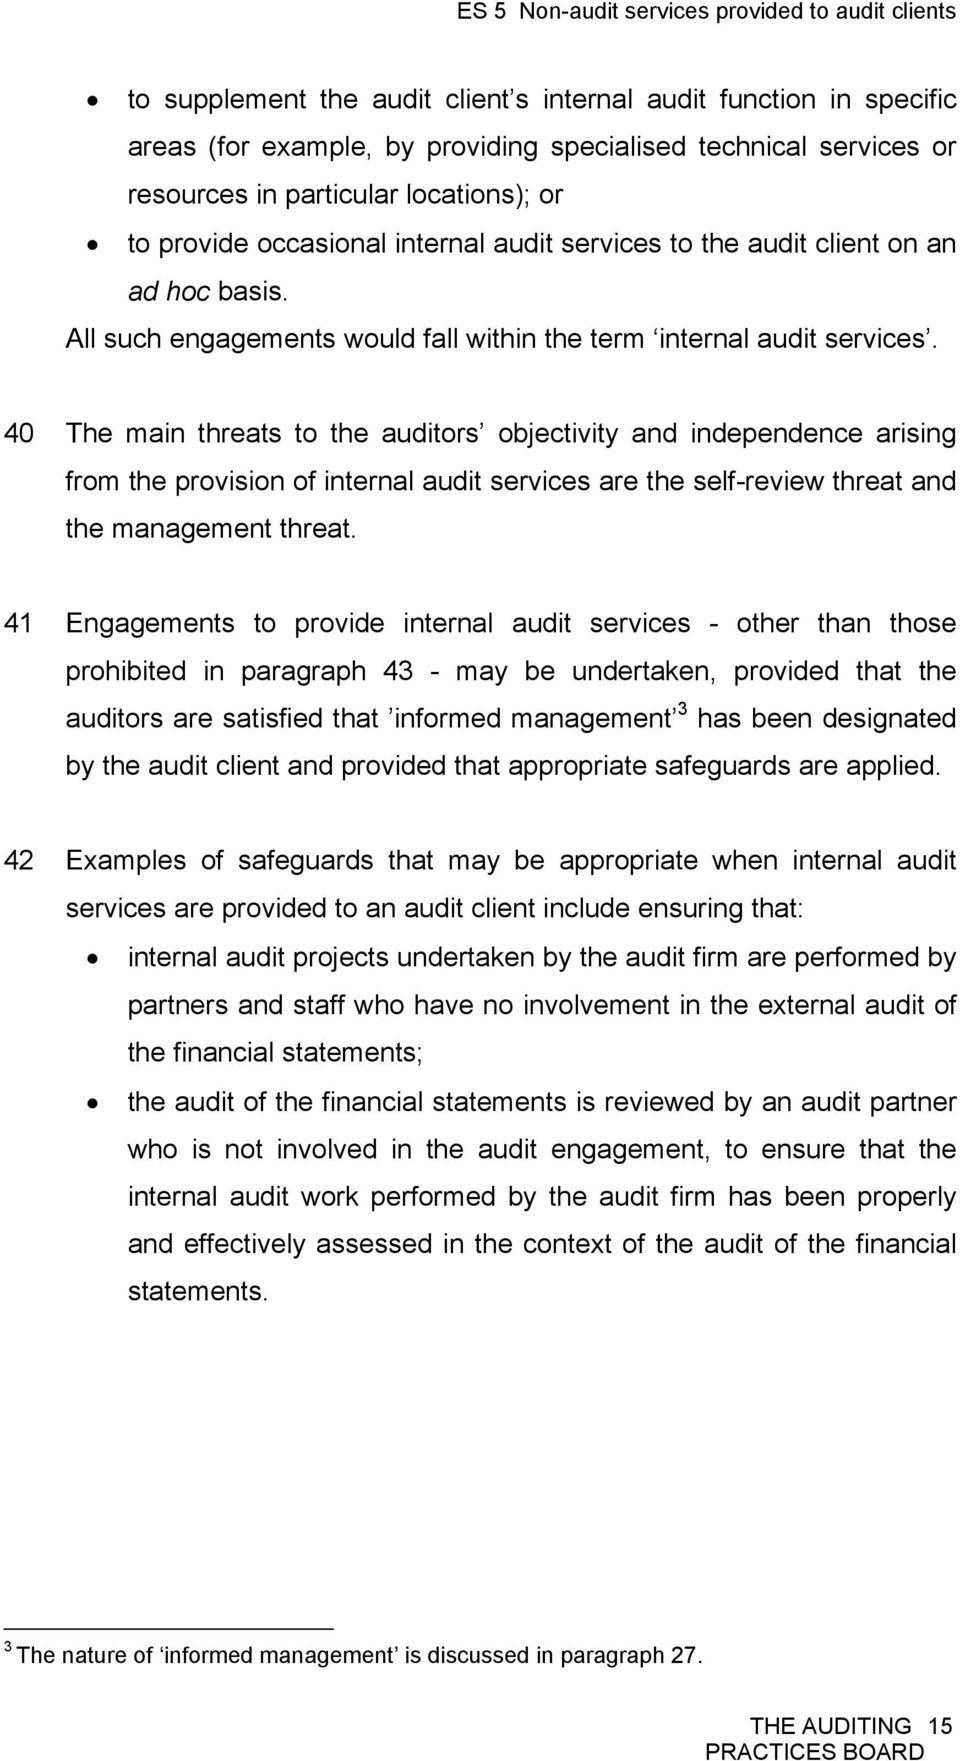 40 The main threats to the auditors objectivity and independence arising from the provision of internal audit services are the self-review threat and the management threat.